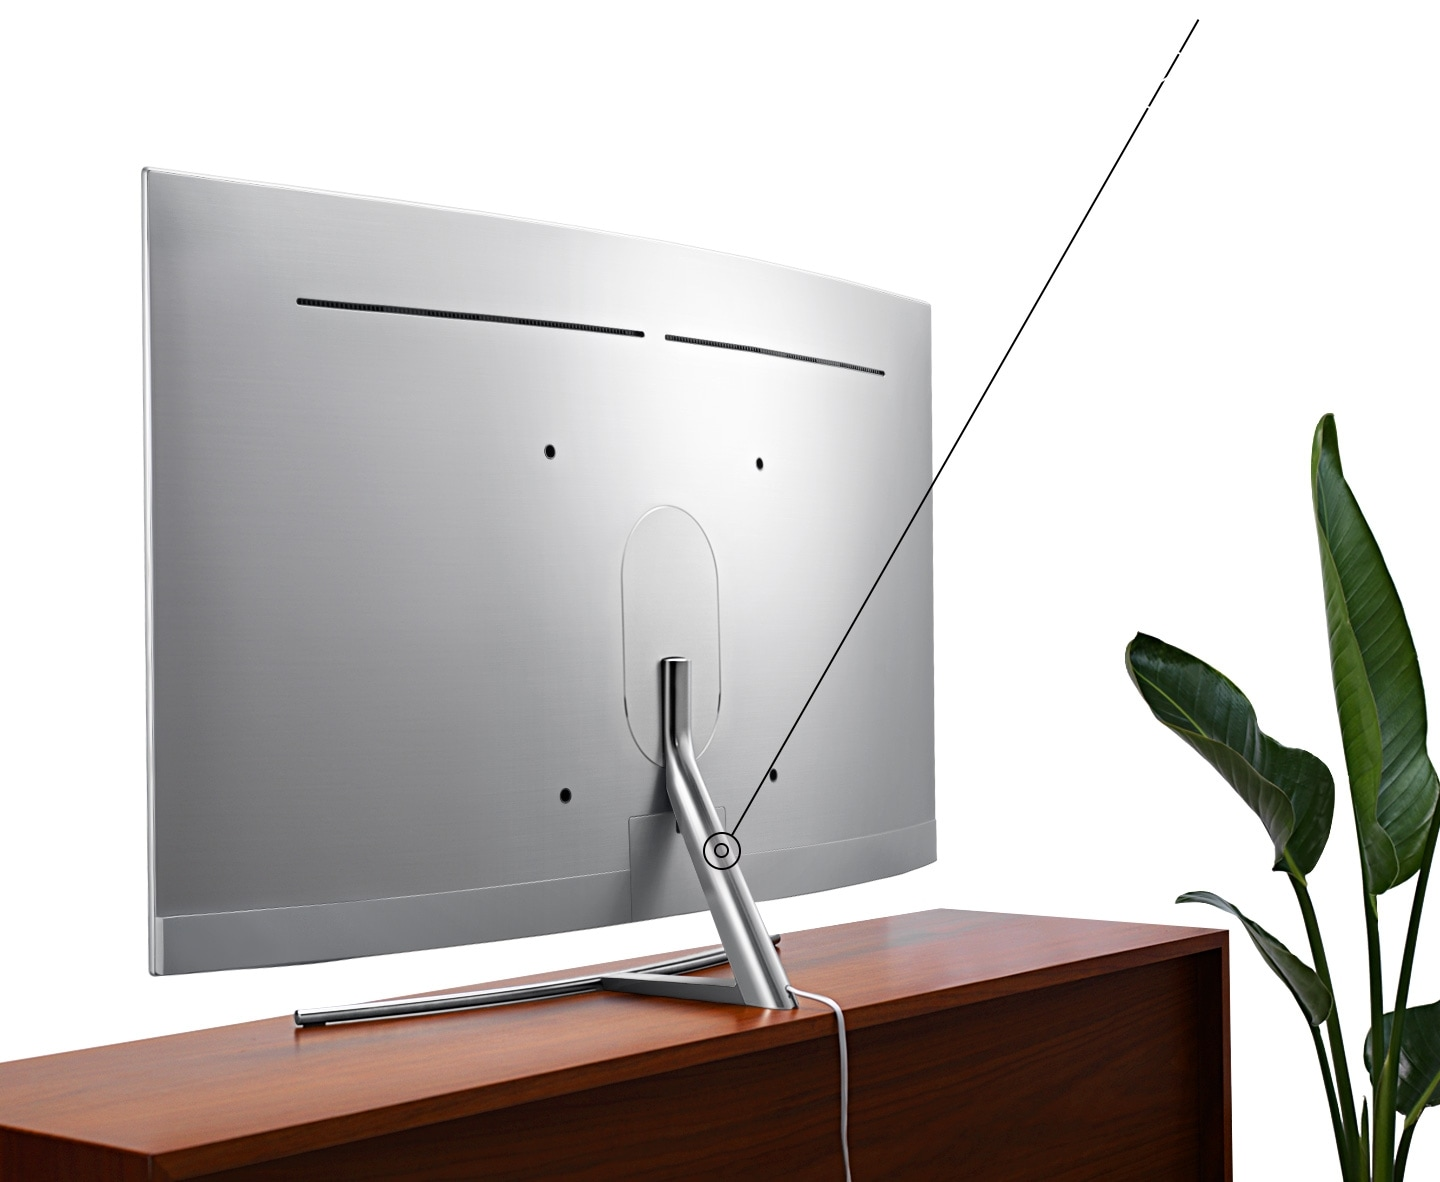 There is QLED TV on the timber shelf with its back and at the tip of the stand, power cable is connected.